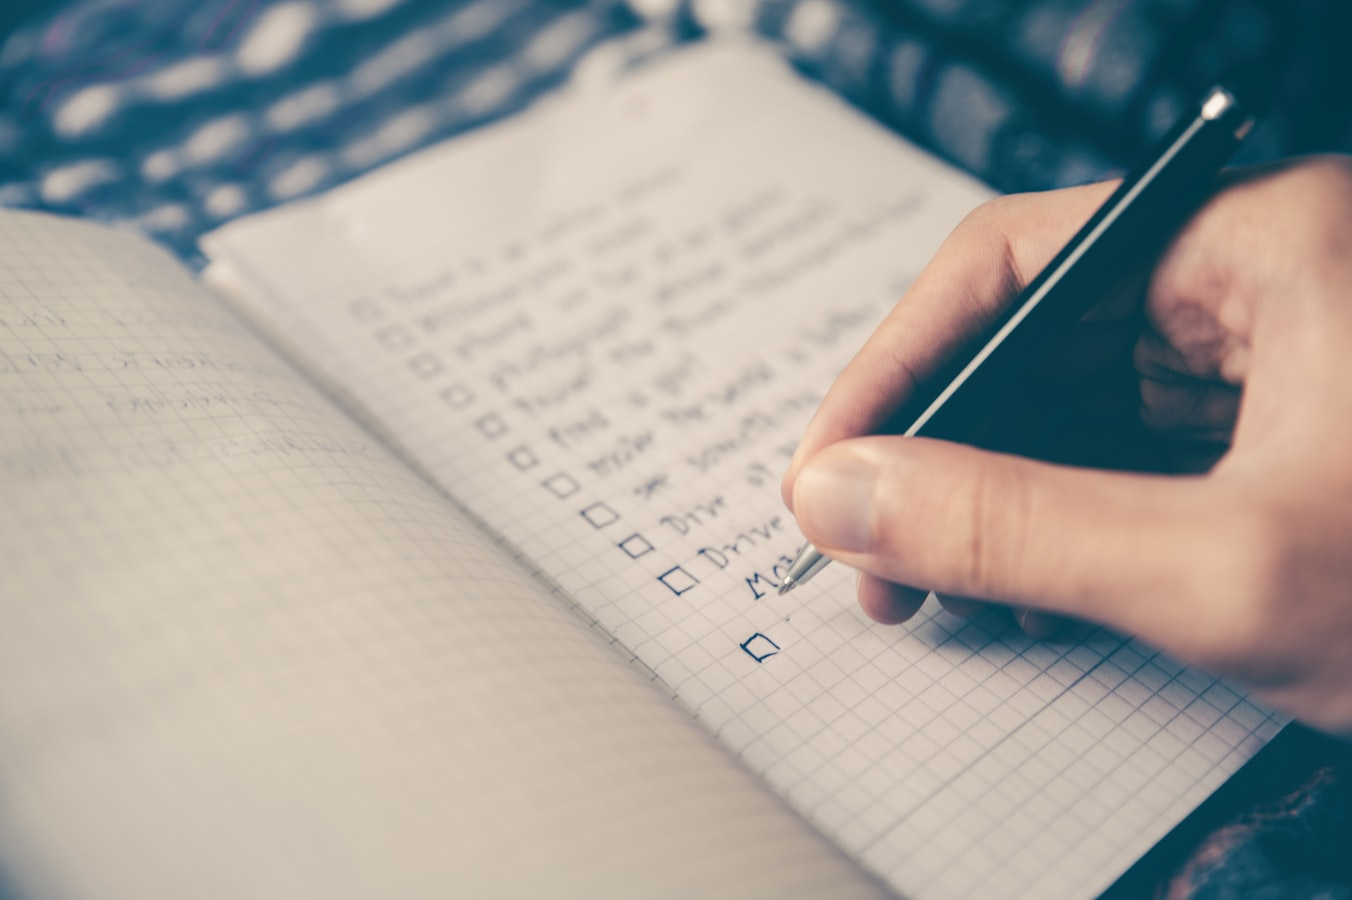 A check list used to make exercise goals. Making a list of exercise goals can help seniors stay active